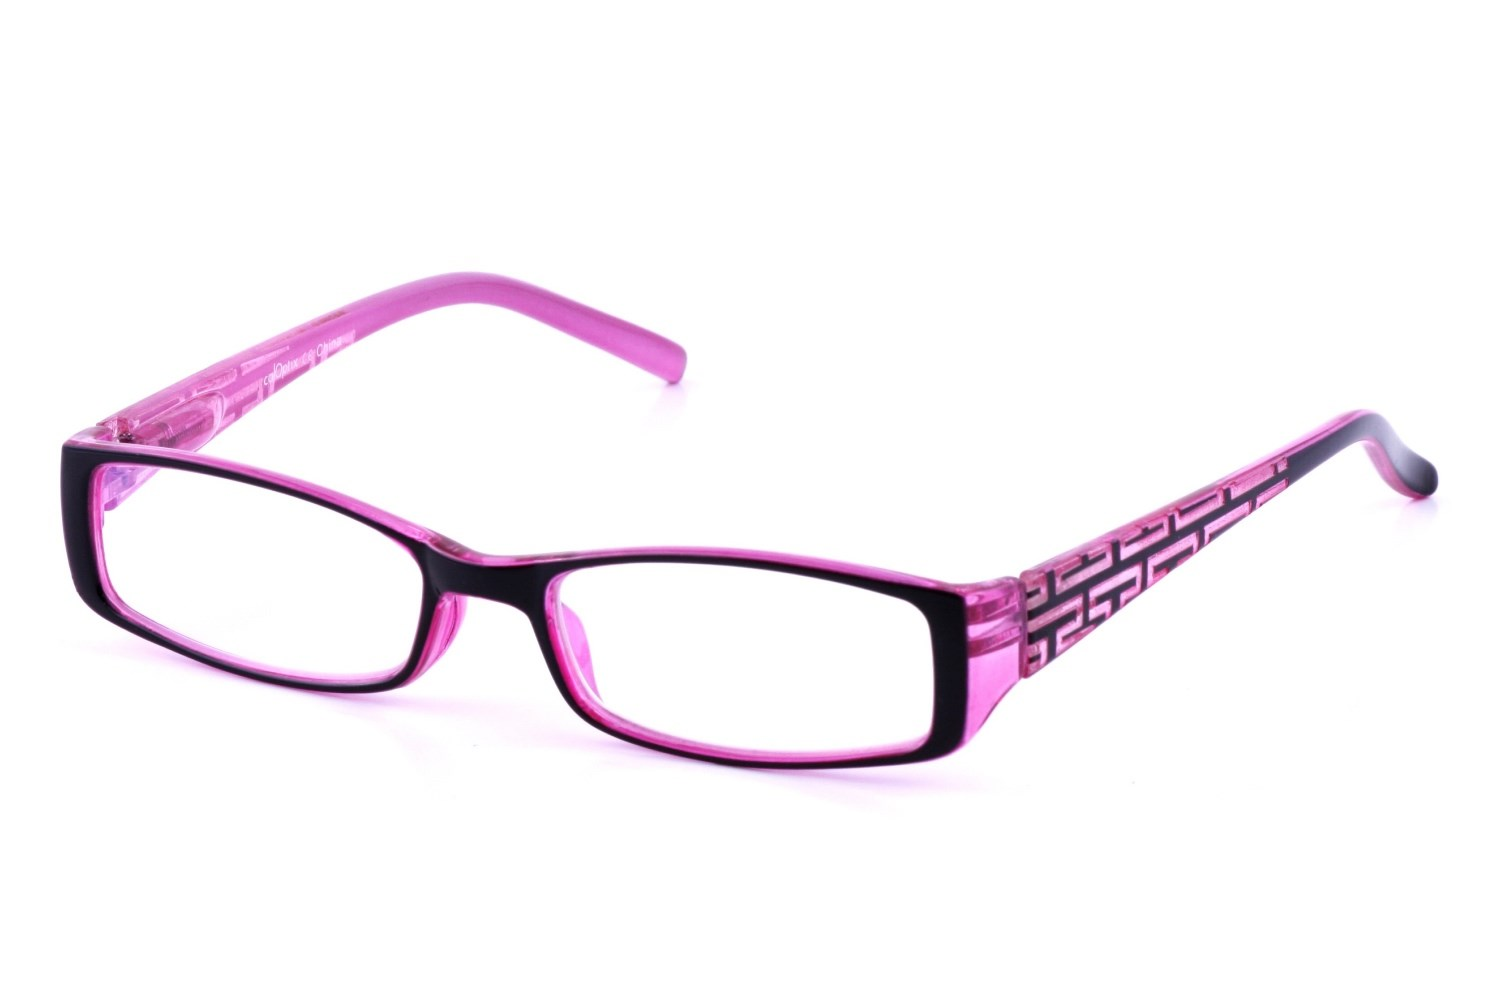 California Accessories Urban Eyes Purple Reading Glasses